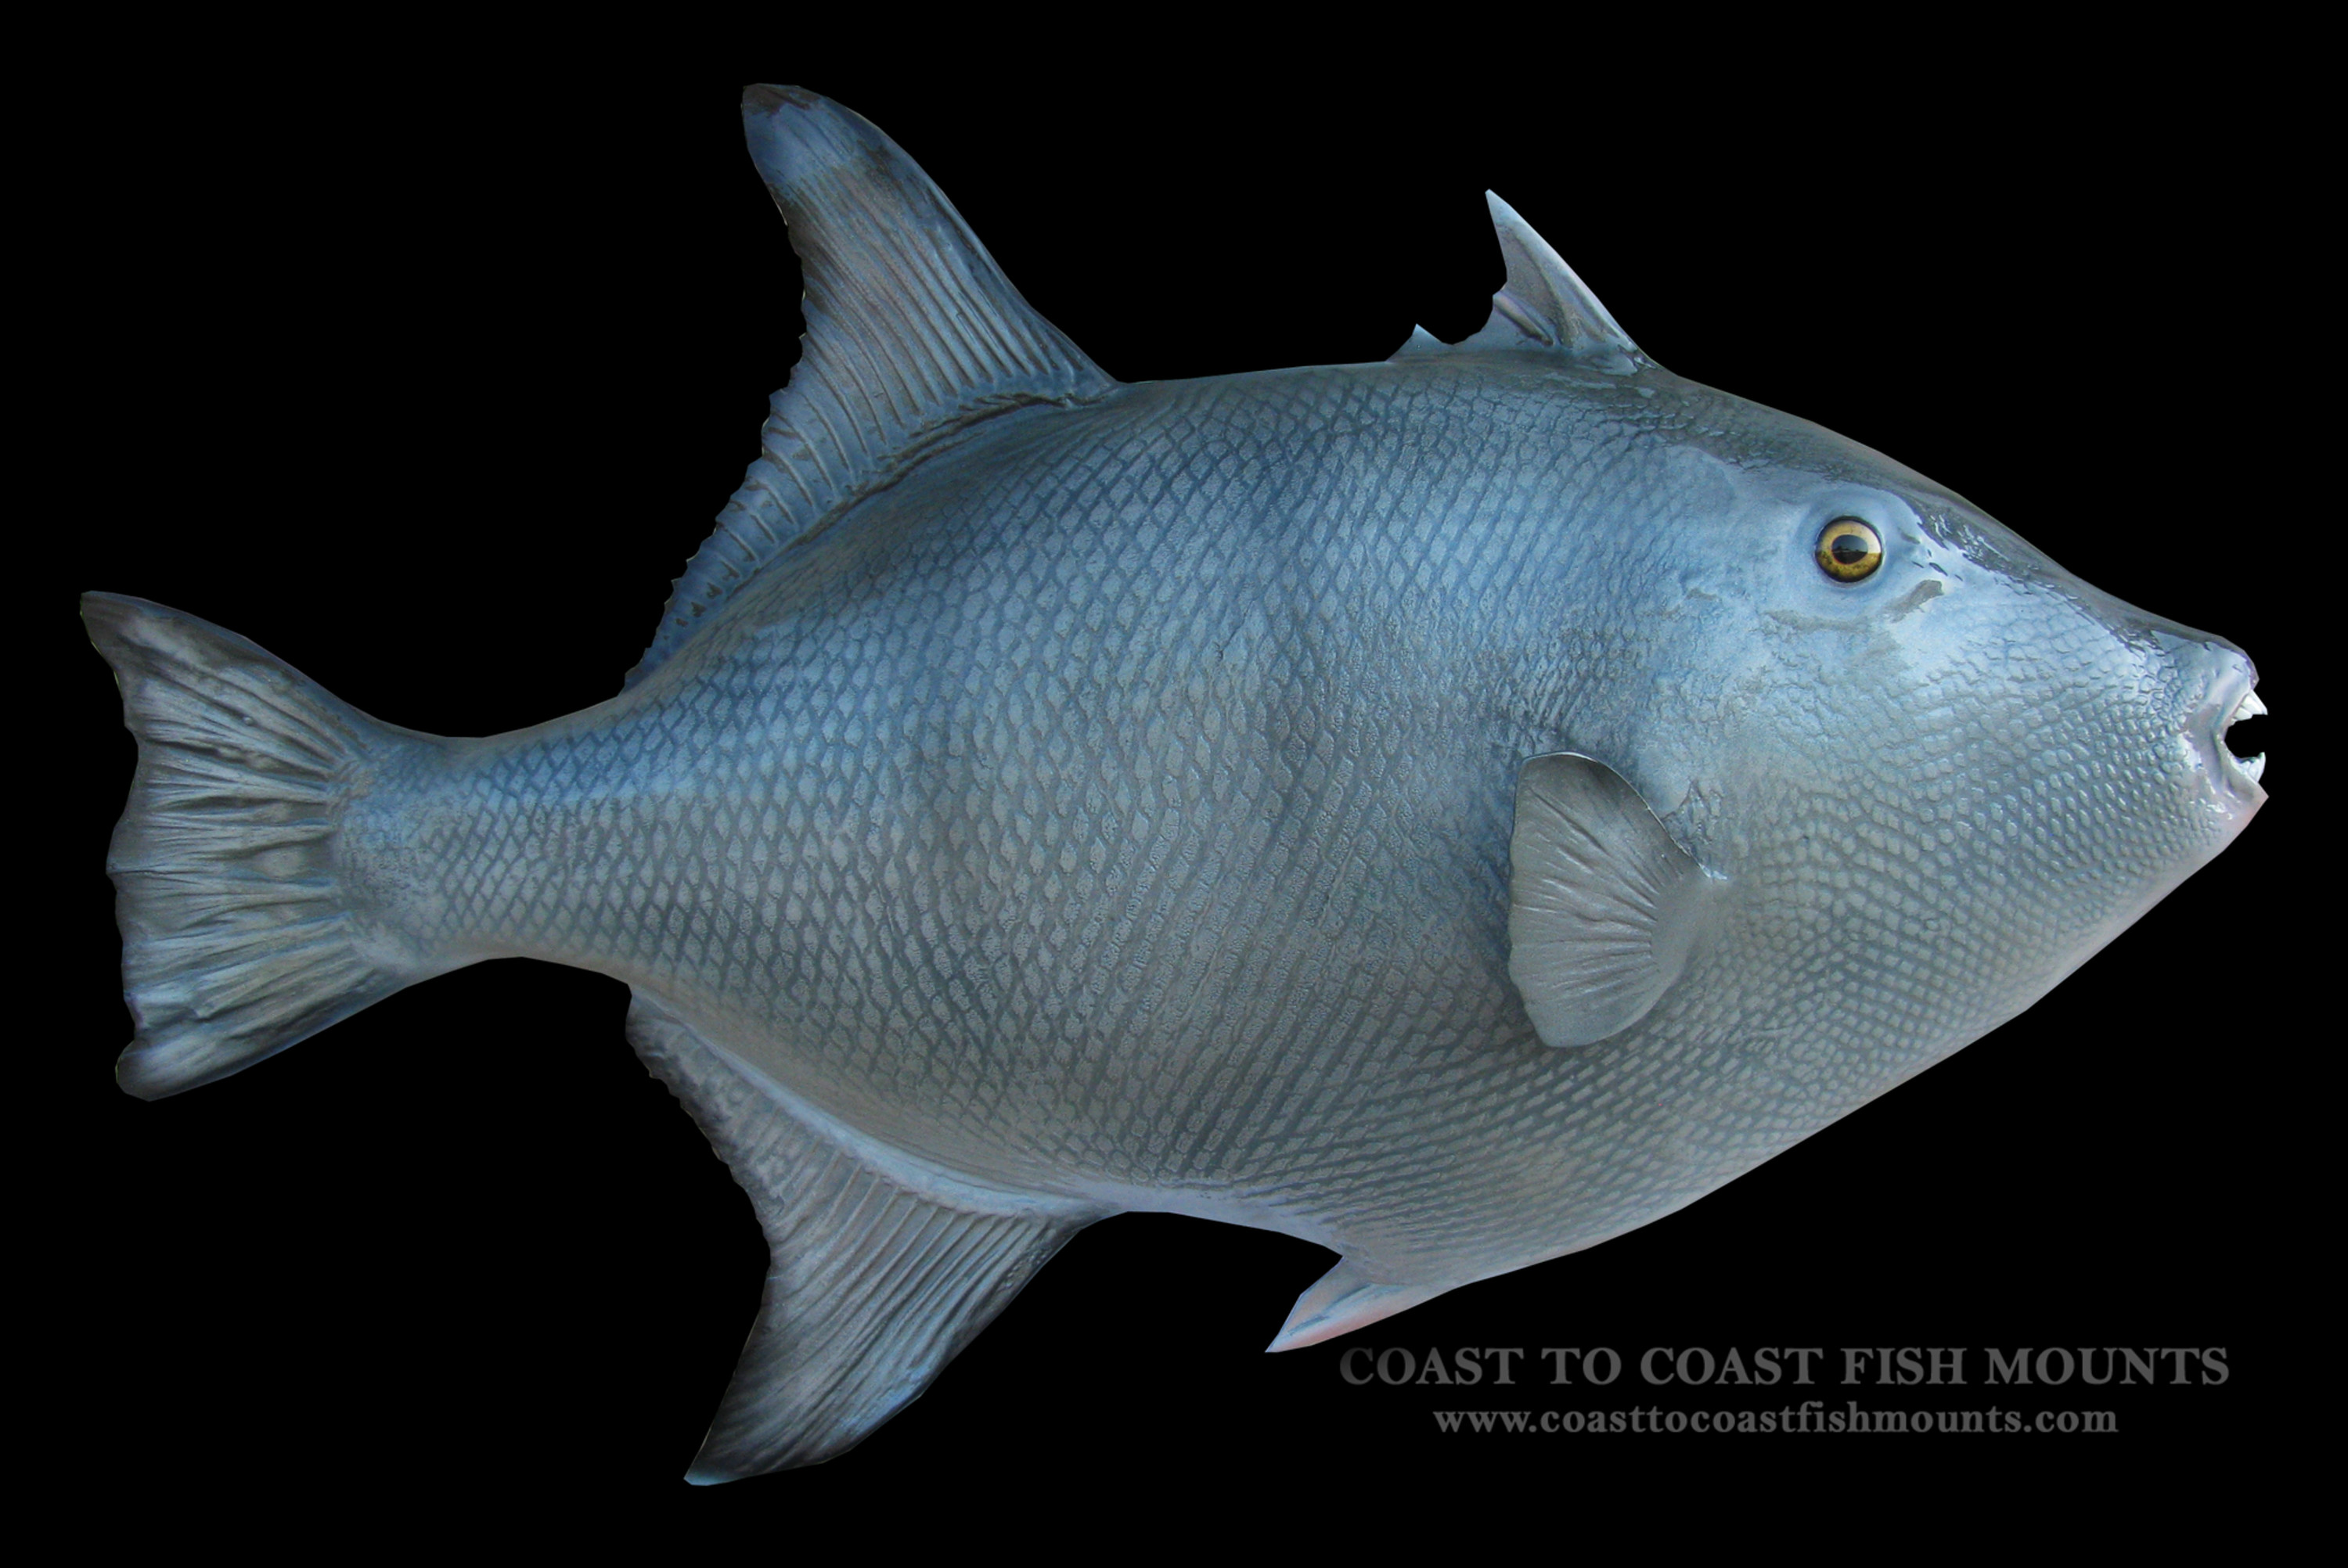 Grey trigger fish fish mount and fish replicas coast to for What fish is this